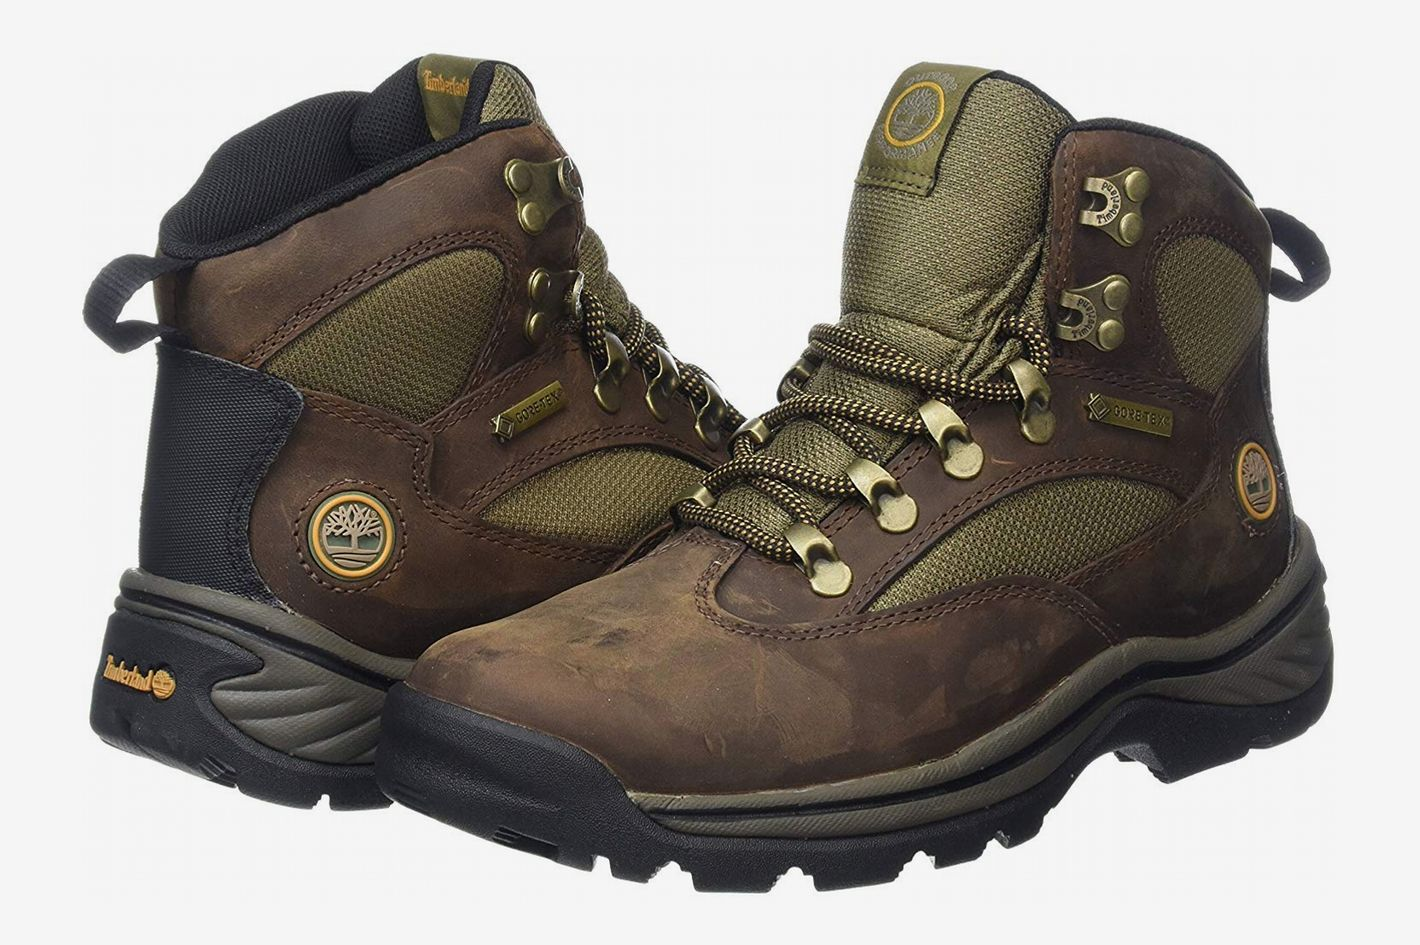 33e3daf502f 21 Best Women's Hiking Boots to Buy 2019